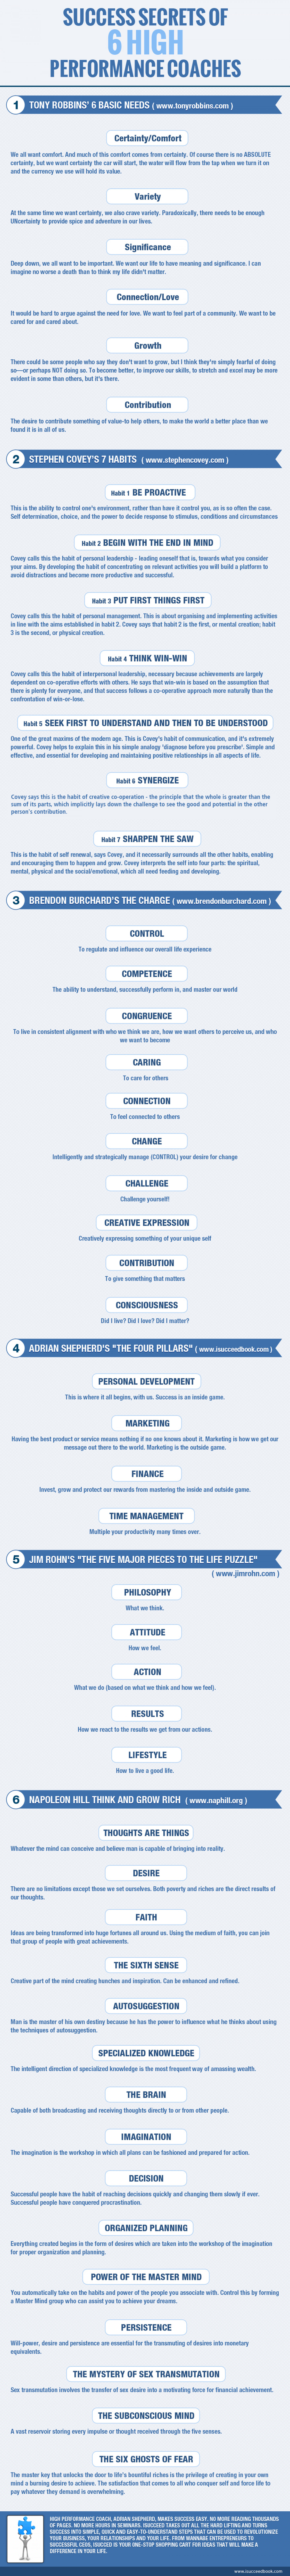 Success Secrets of 6 High Performance Coaches Infographic